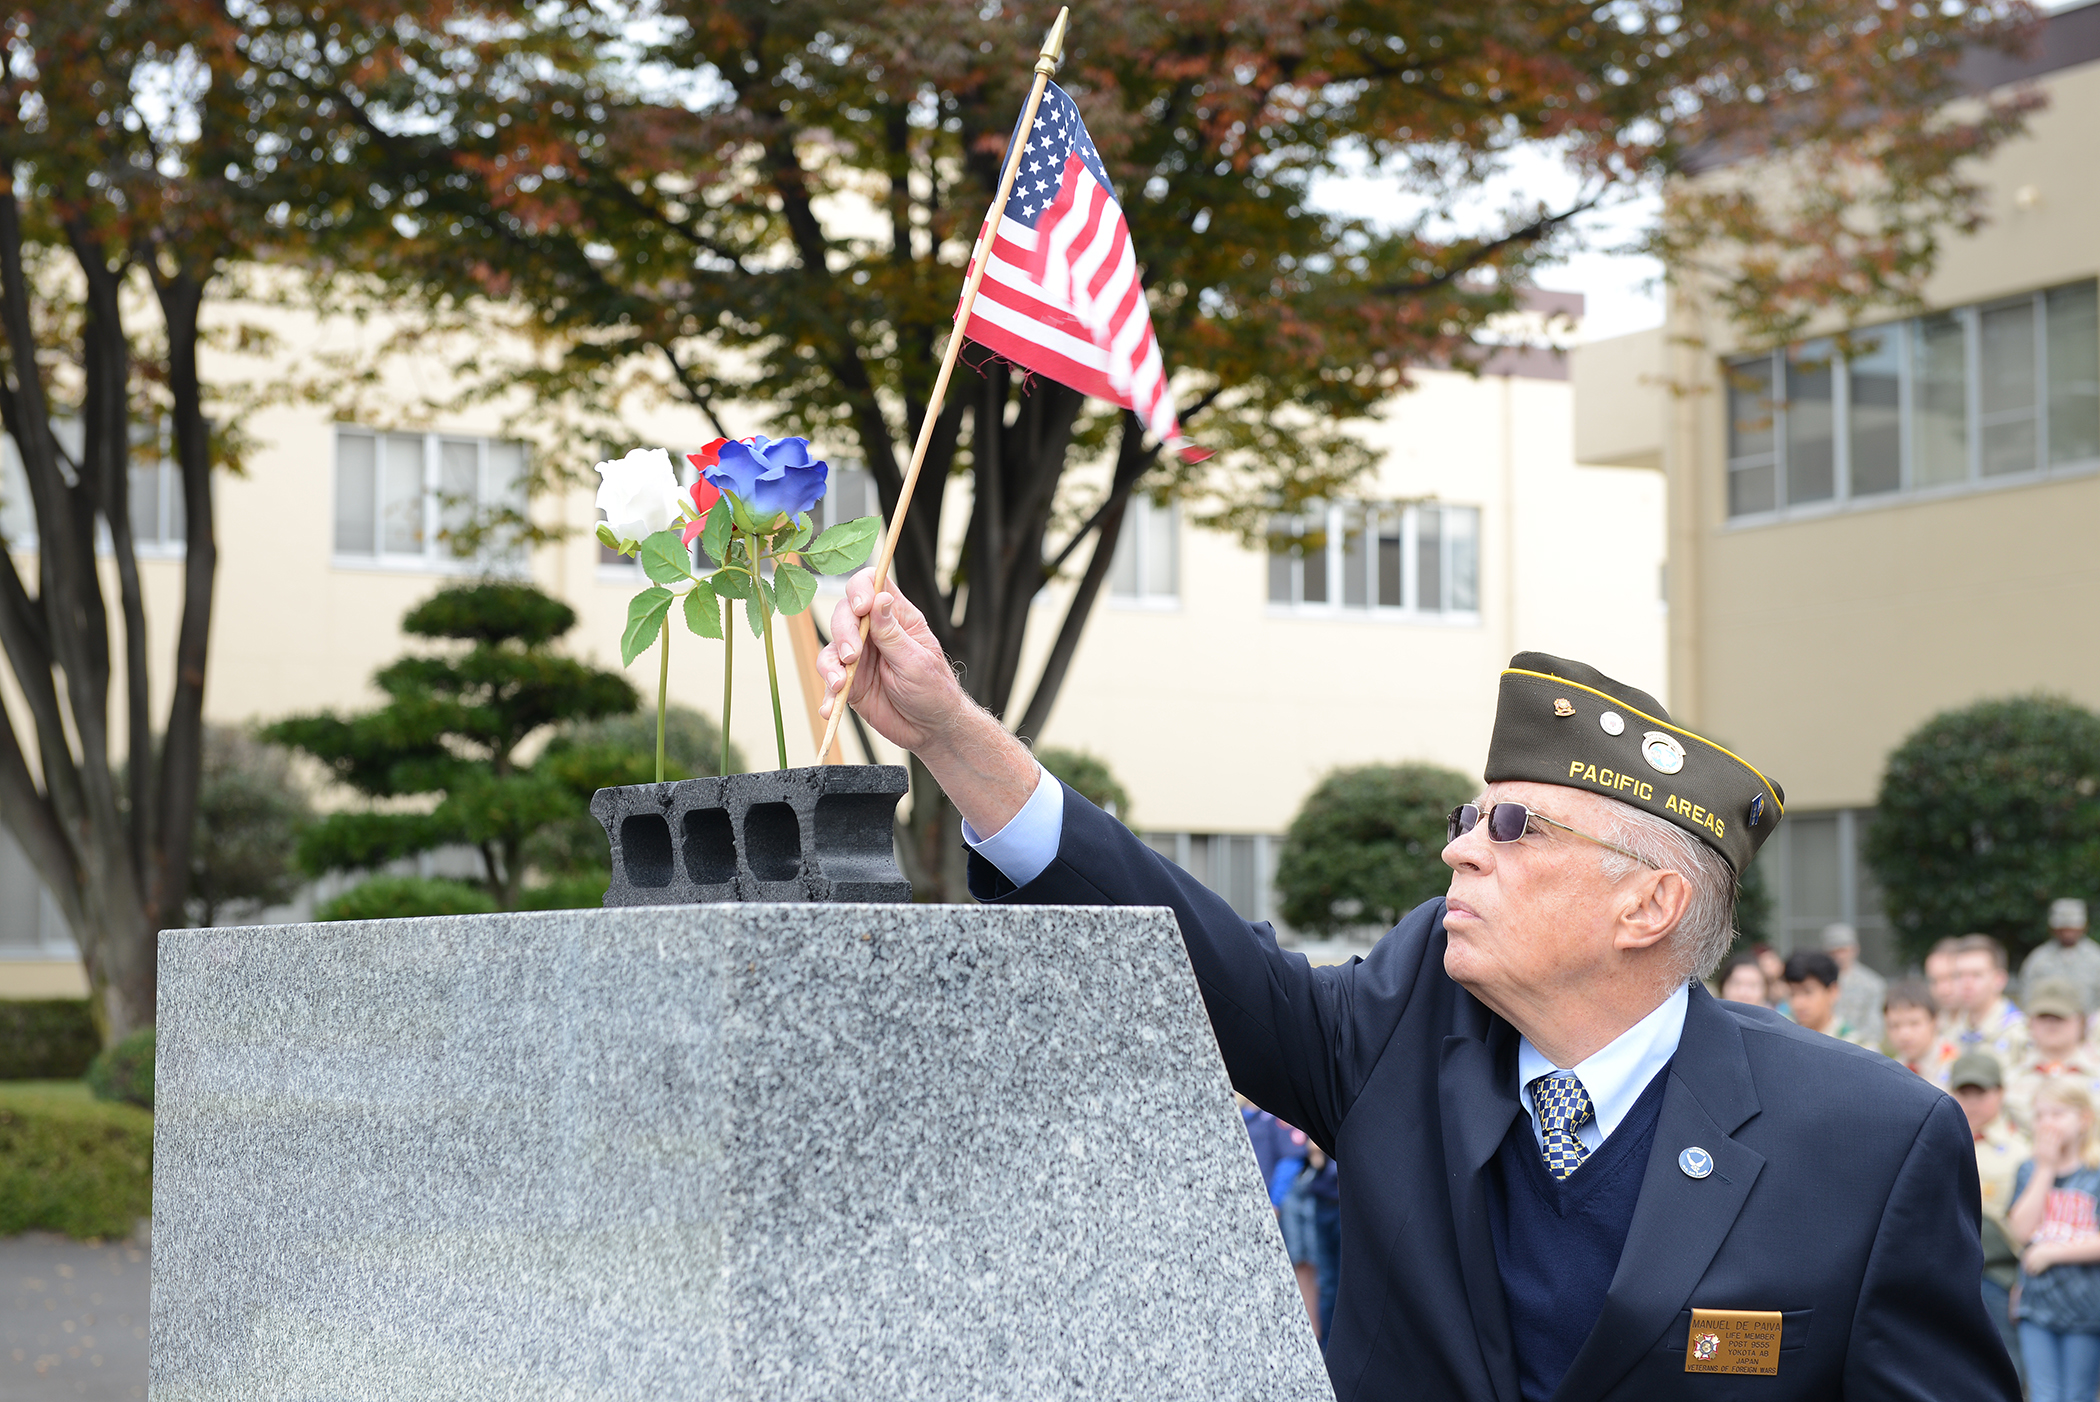 A member of the Veterans of Foreign Wars places an American flag on a monument during the three flower ceremony at Yokota Air Base, Japan, Nov. 11, 2015. The three flowers each have a different meaning: The red rose represents those who have died in defense of their country, the white celebrates future service members and the blue immortalizes the deeds of Soldiers, Sailors, Airmen and Marines. (U.S. Air Force photo by Senior Airman David C. Danford/Released)